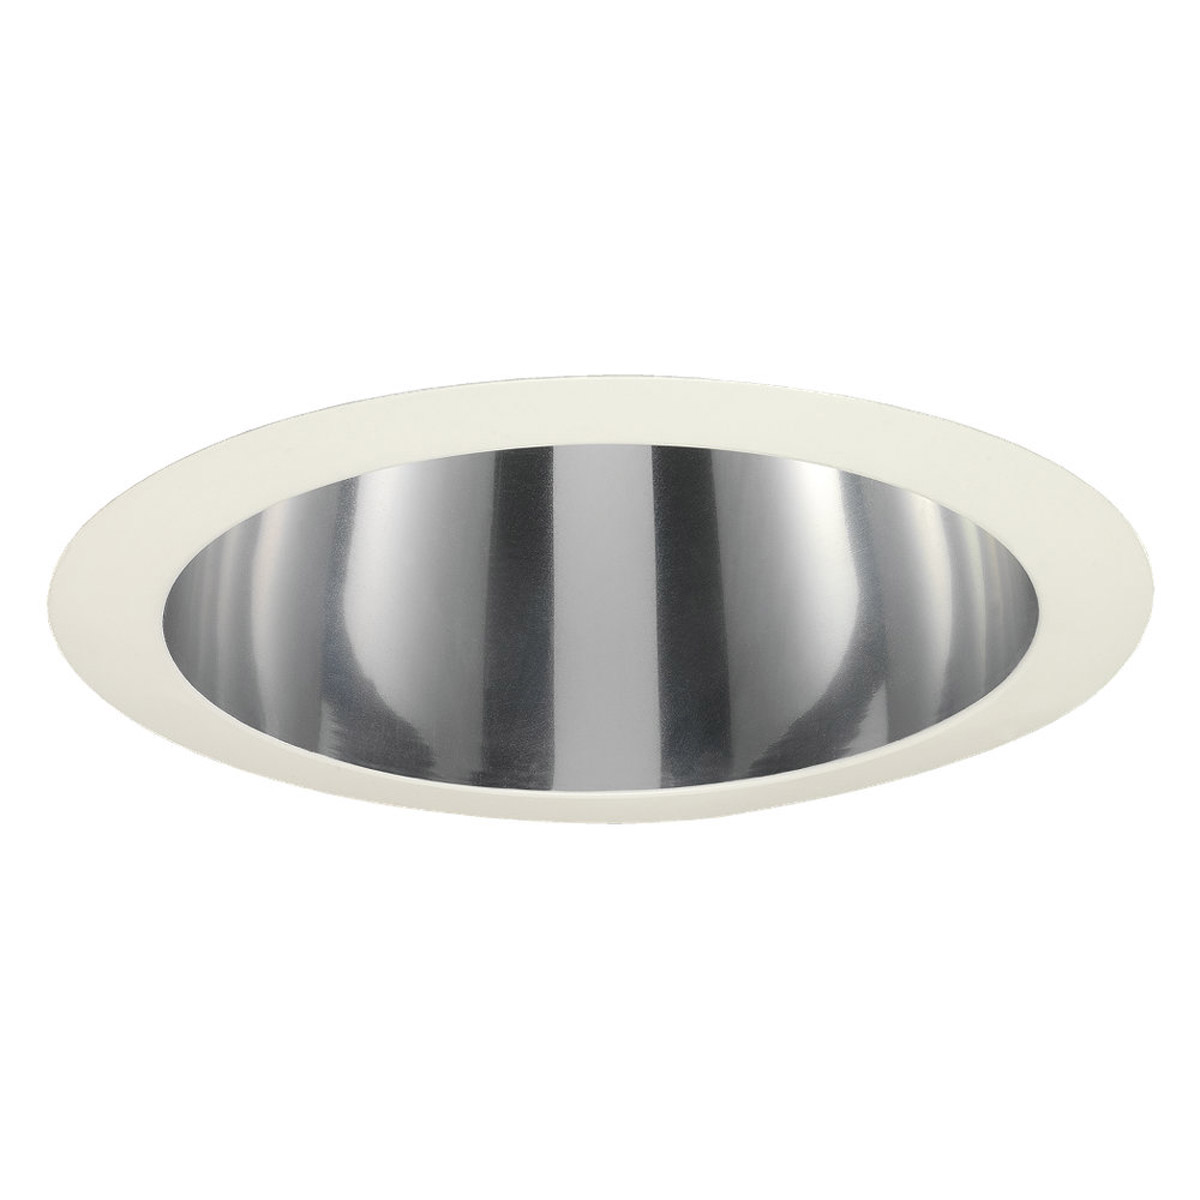 Sea Gull Lighting Signature Recessed Trim Only in Polished Aluminum 11132AT-22